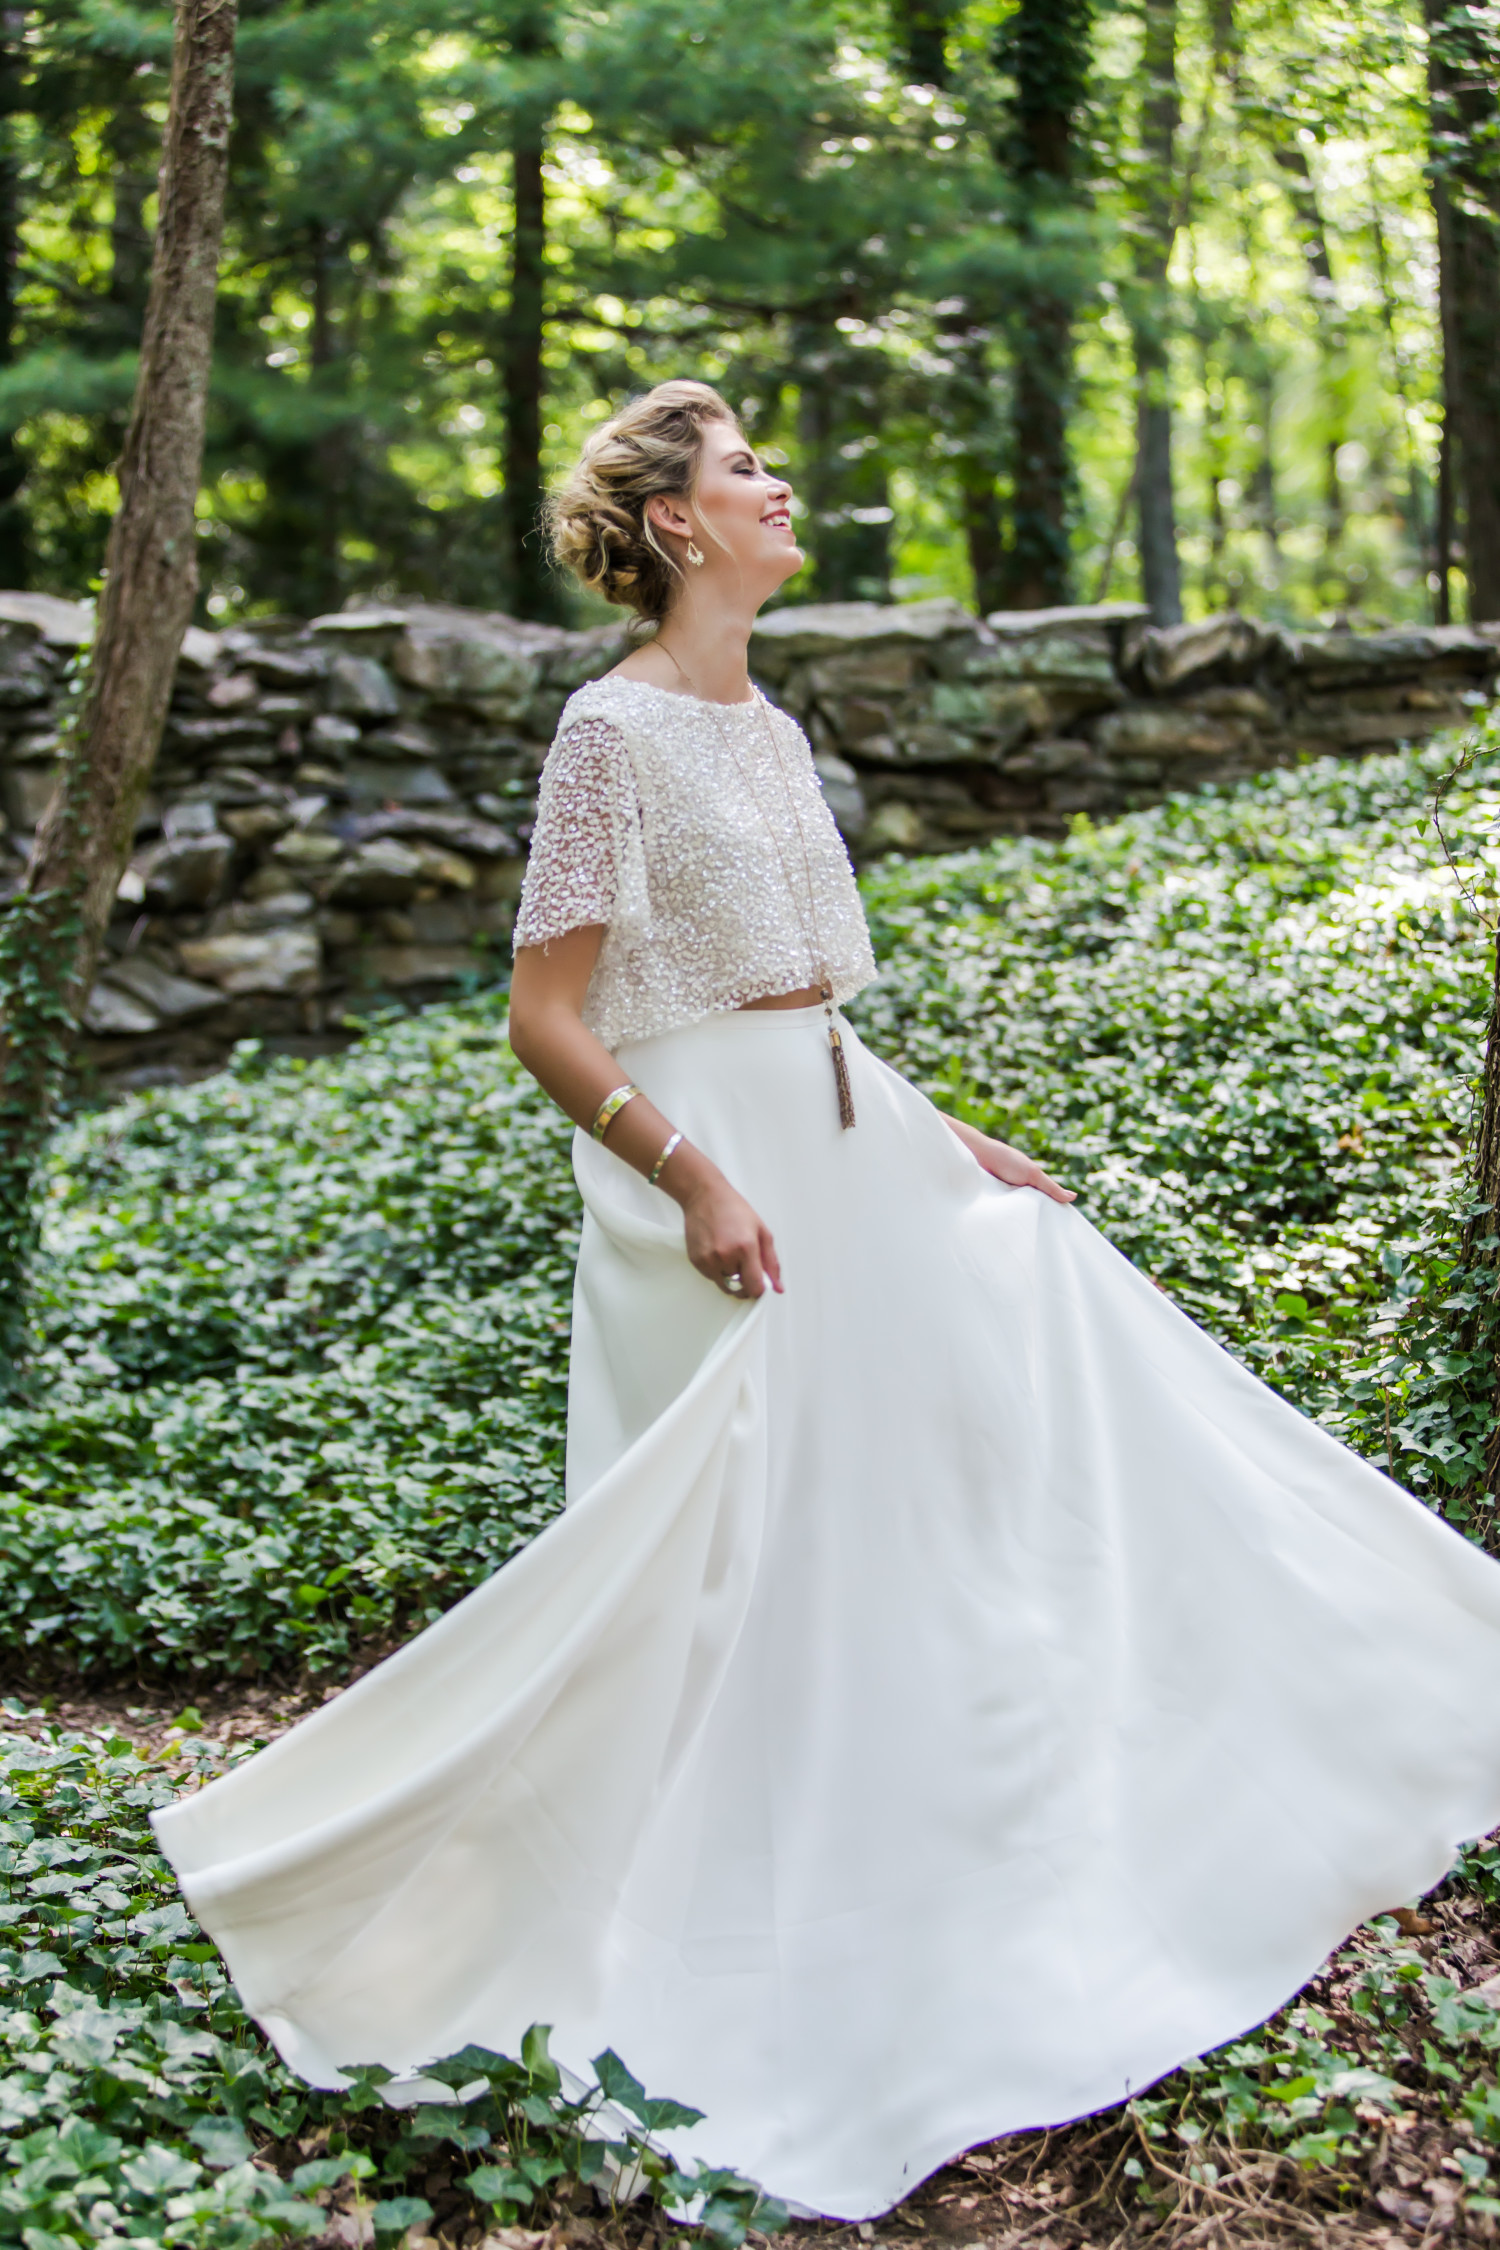 Southern Bride Magazine - photo by Michael Allen Photography